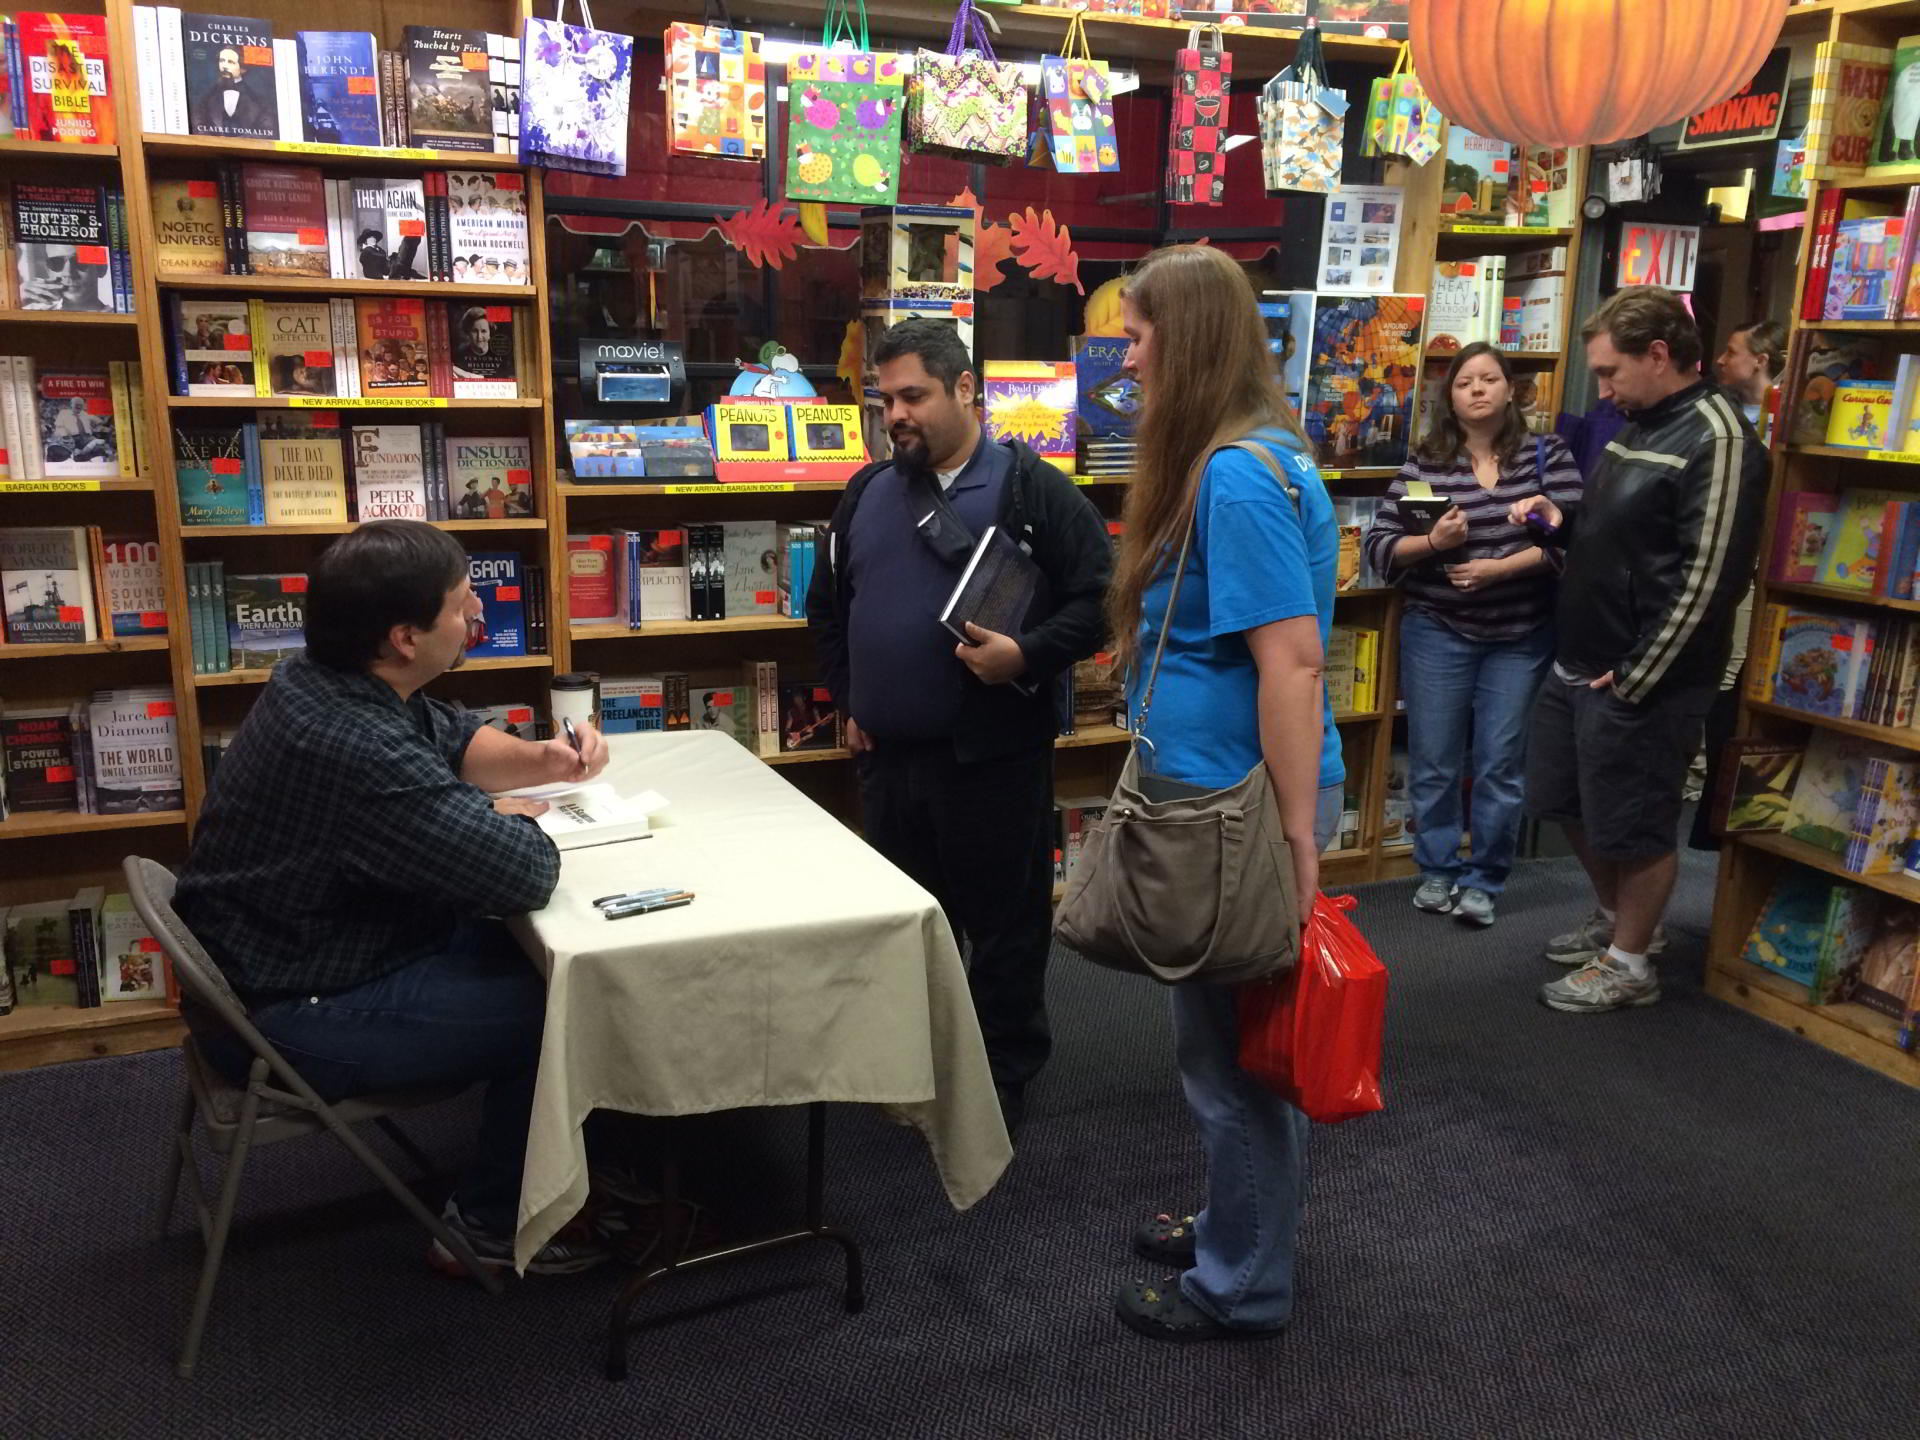 ra salvatore talks to fans during book signing